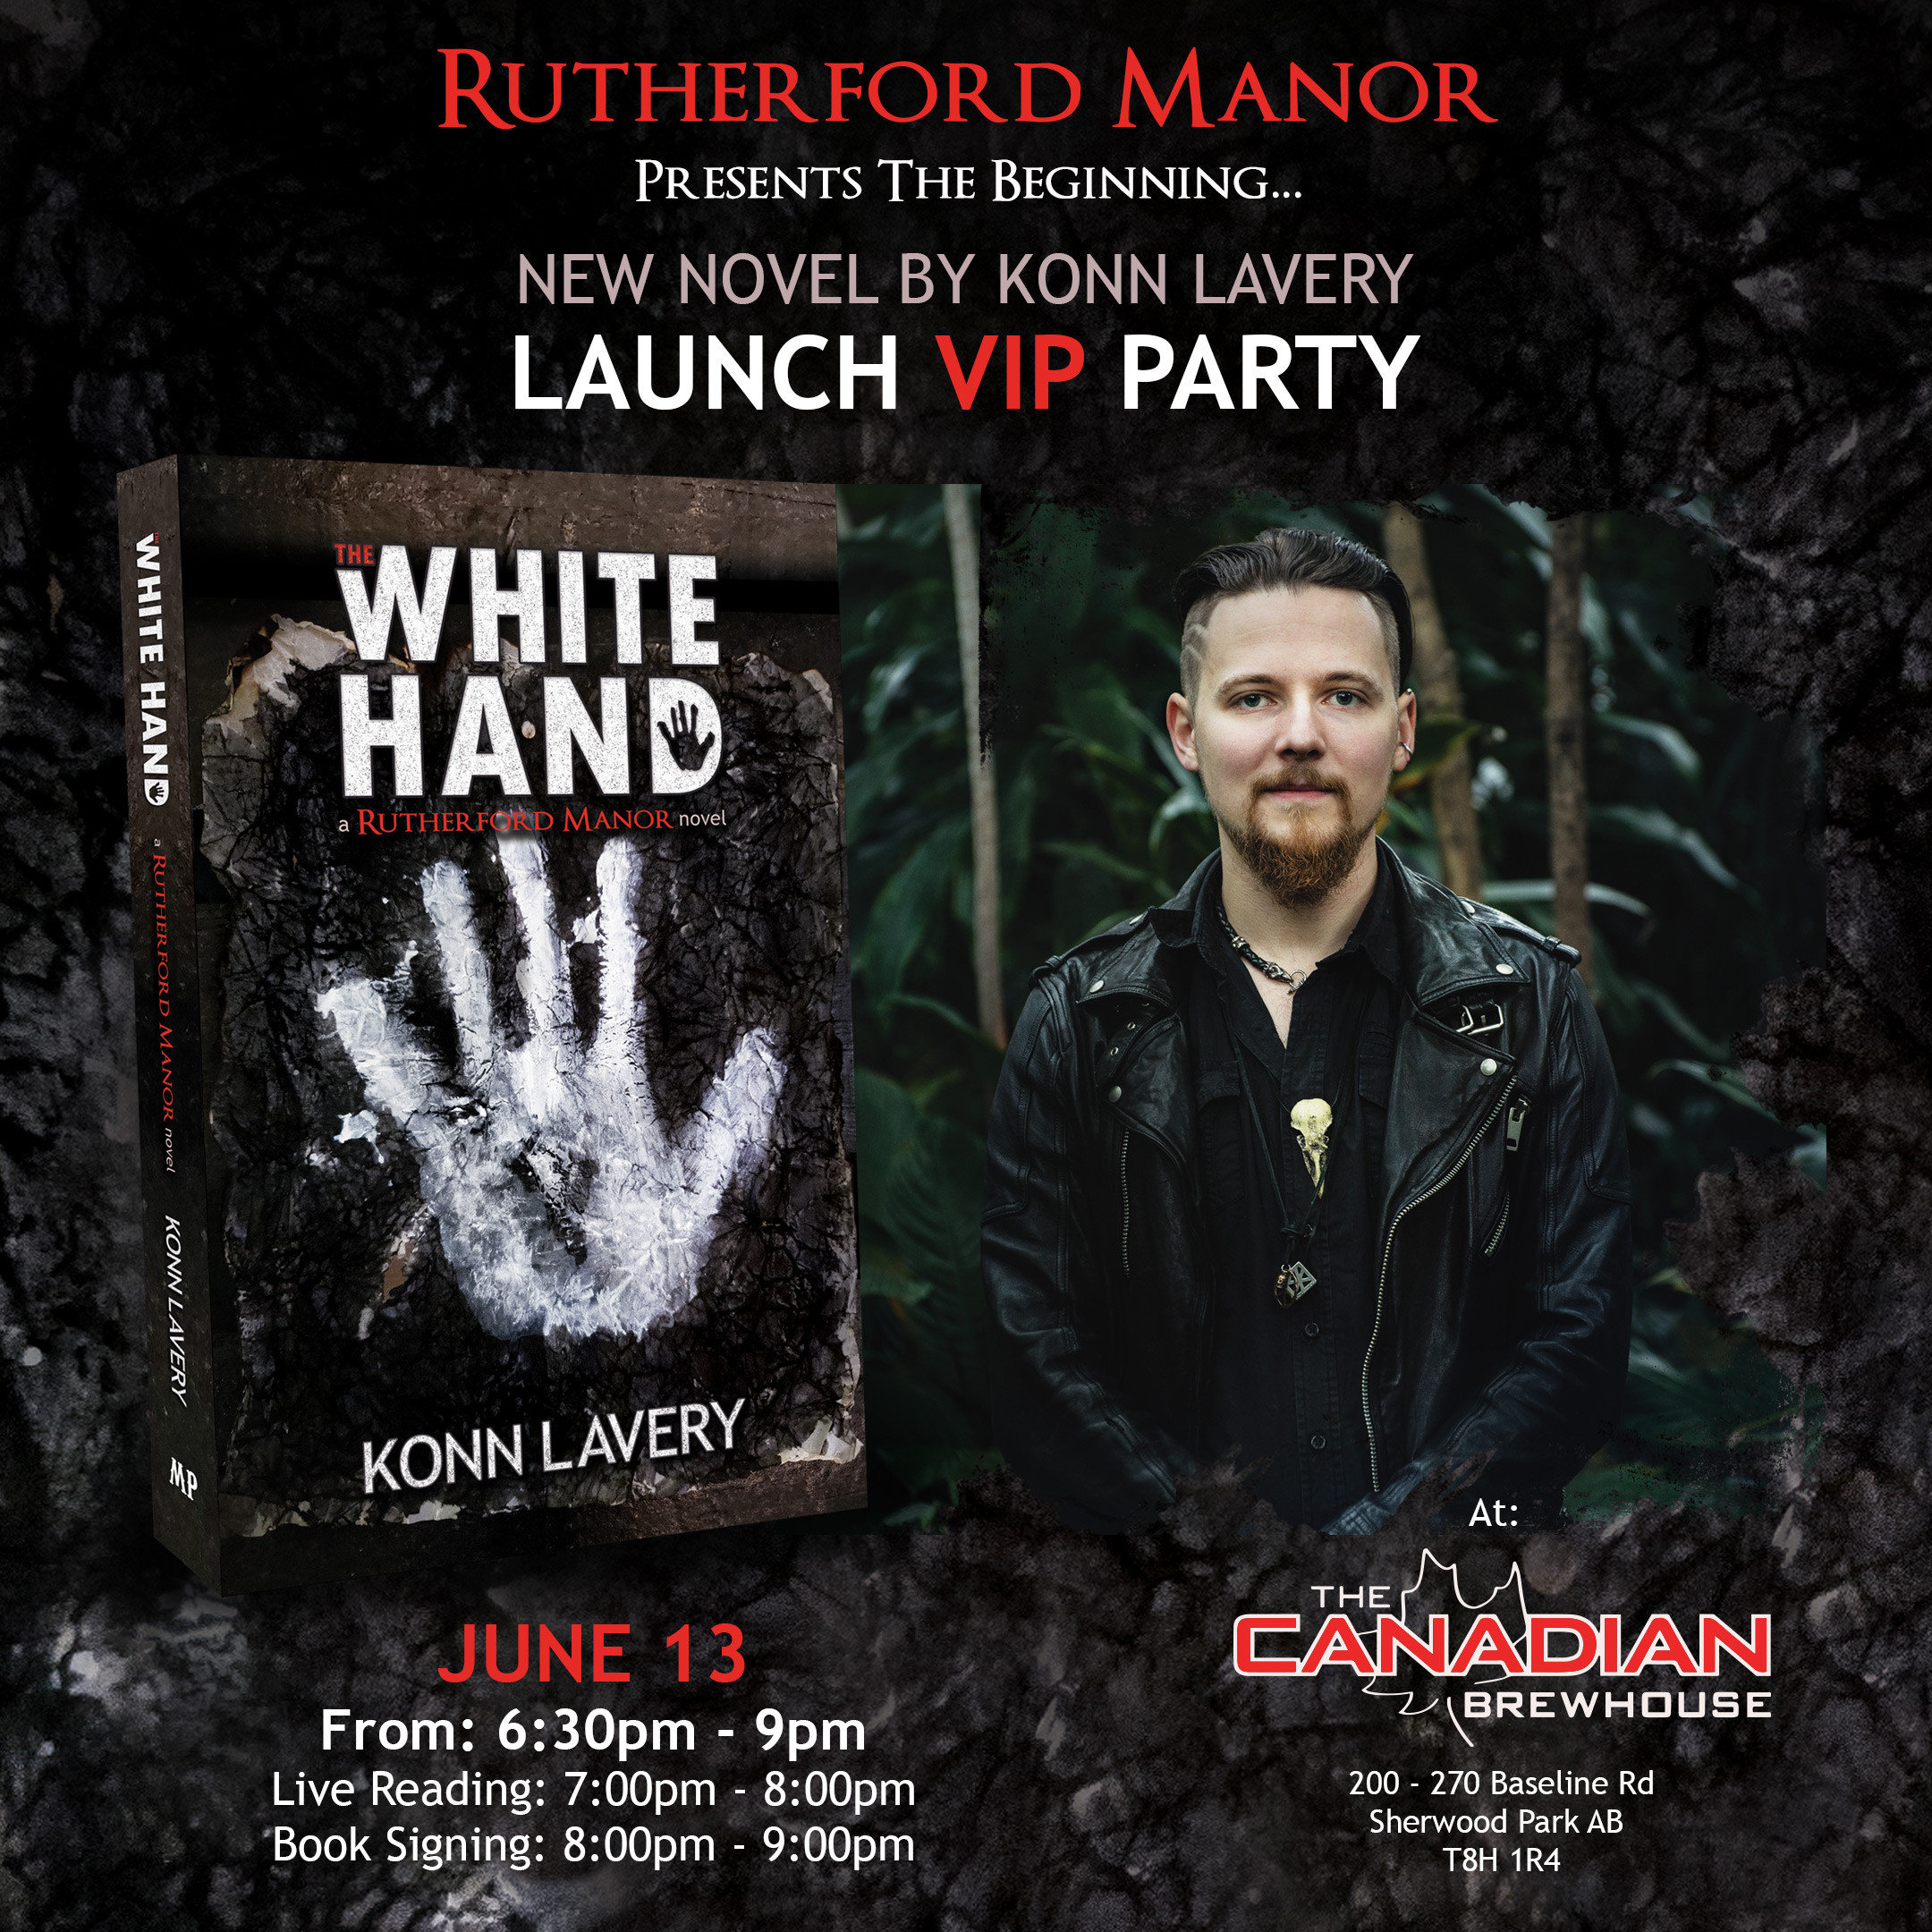 RUTHERFORD MANOR VIP BOOK LAUNCH PARTY!!! Come join us at the launch party for the next saga in the world of Rutherford Manor with the release of THE WHITE HAND by horror/thriller author, Konn Lavery. Based on the award-winning Canadian haunt and forthcoming television series, The White Hand brings you into a historical thriller of mobsters, forbidden love, old souls, and betrayal. The White Hand dives into the dark world of resurrectionists during 1890 in Illinois. Headmaster Alastor Flesher and his business partner, Spalding Savidge, find themselves desperate to provide for their families. They willingly partner with the Irish mob – The White Hand – to sell corpses to anatomists. The deal twists while secrets are kept between the families. Spalding develops uncertain emotions for Irene, the daughter of The White Hand's boss. With a dash of foul play and new allies, Spalding is forced to become the voice of reason within Rutherford Manor while he loses his sense of judgement. Join the Fleshers and the Savidges as they plummet into an era-altering series of events that will change Rutherford Manor forever. EVENT DETAILS: Arrive: 6:30 PM Live Reading: 7:00 PM to 8:00 PM Book Signing: 8:00 PM to 9:00 PM Party Time: 9:00 PM onward LIMITED SPACE - RSVP REQUIRED Other Details: This is a Free Event open to anyone! Space is limited so please indicate if you are coming ASAP. Attendees will be responsible for their own food and drink. Books will be available for purchase at the event. Konn Lavery